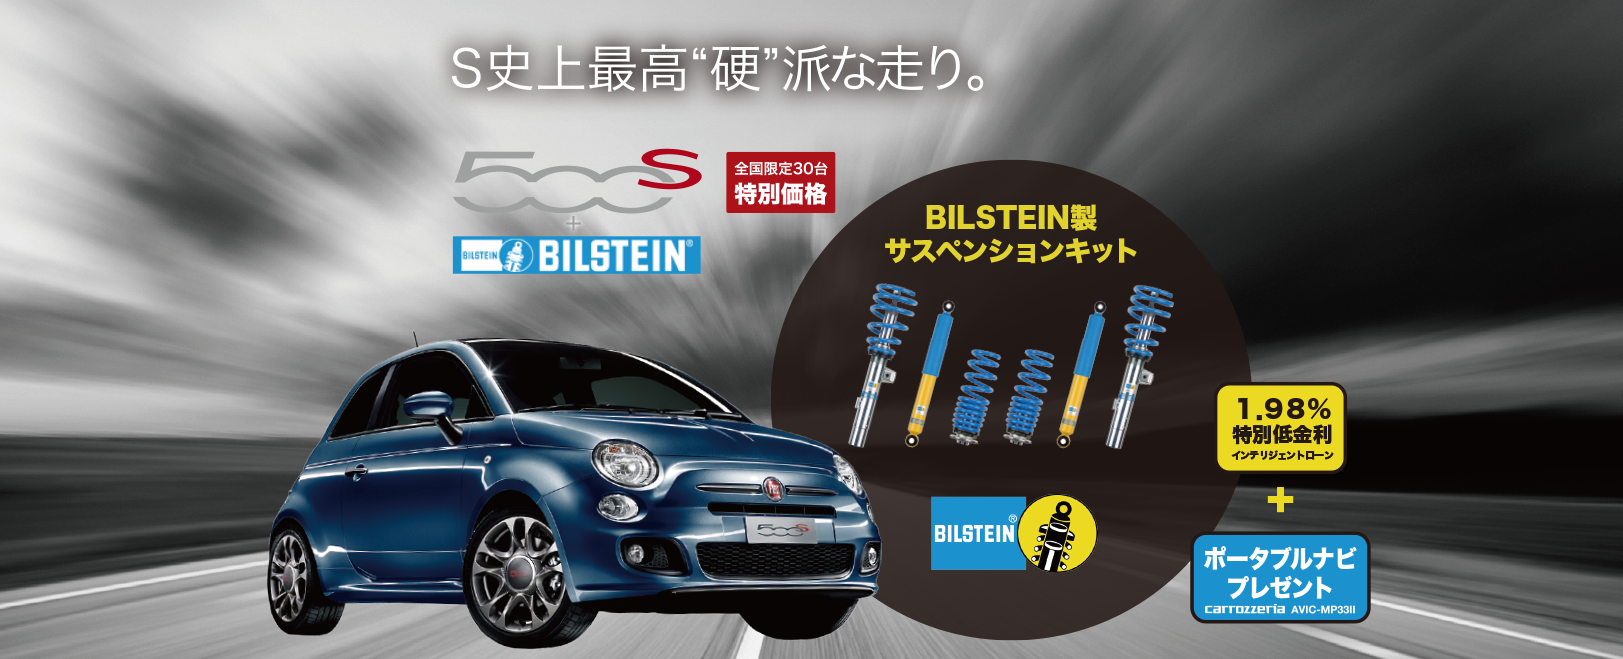 http://www.fiat-auto.co.jp/common/img/index_slide_500BILSTEIN.png